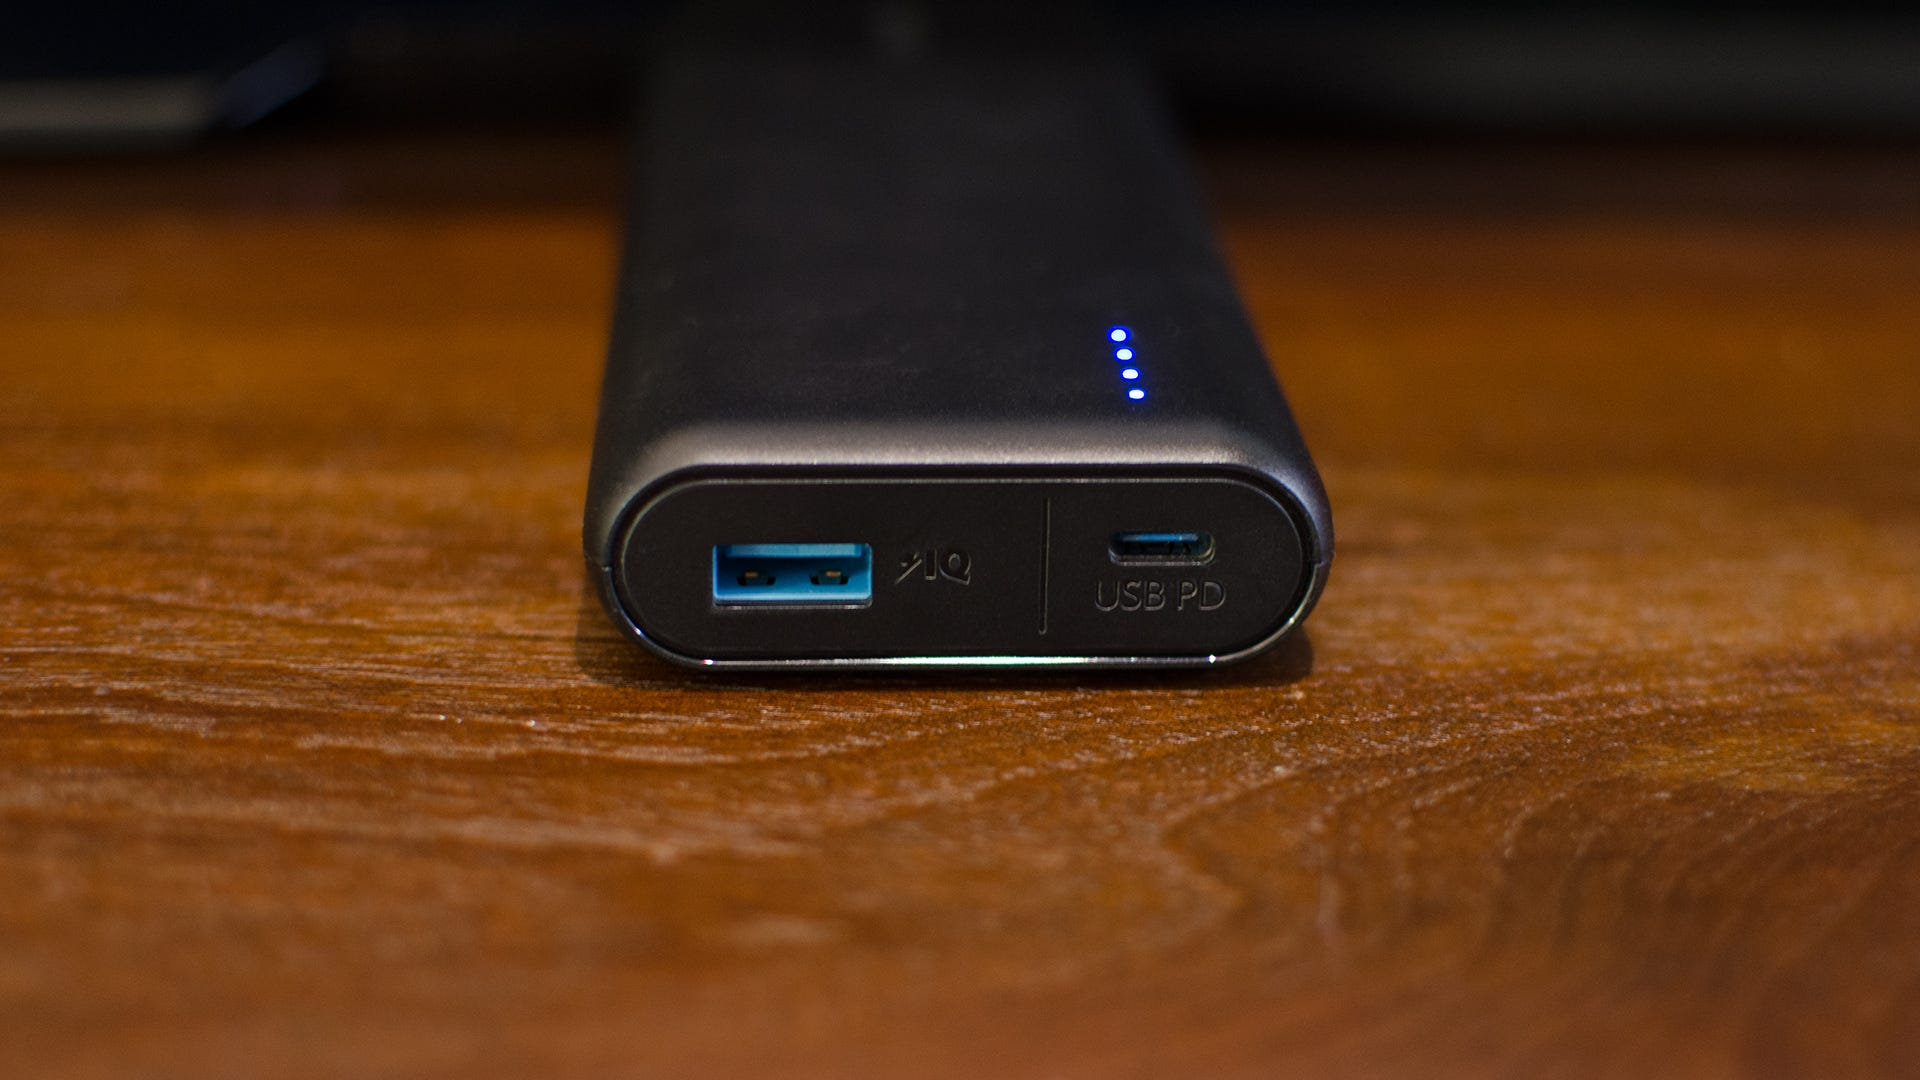 Ankers Usb C Powercore Speed 20000 Pd Is A Beastly Future Proof Full Compliance Battery Charger That Port On The Right Going To Be Your Friend For Long Time